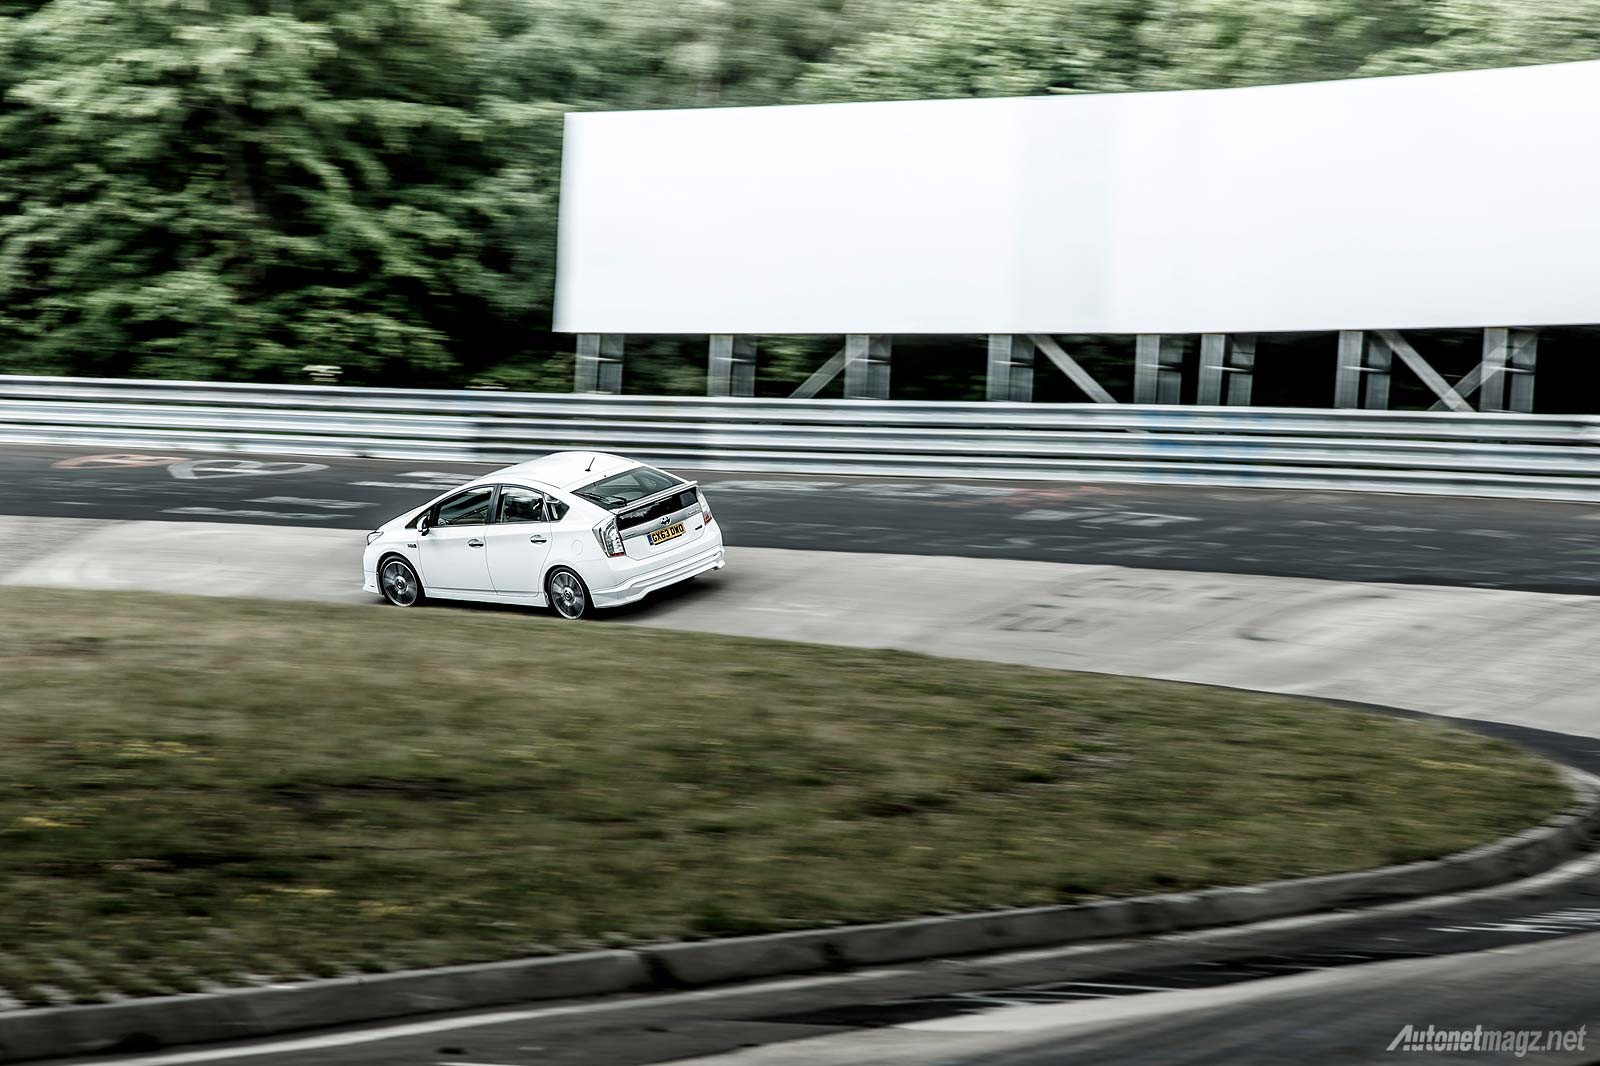 Wallpaper Toyota Prius Plug-in Hybrid TRD Nurburgring best laps